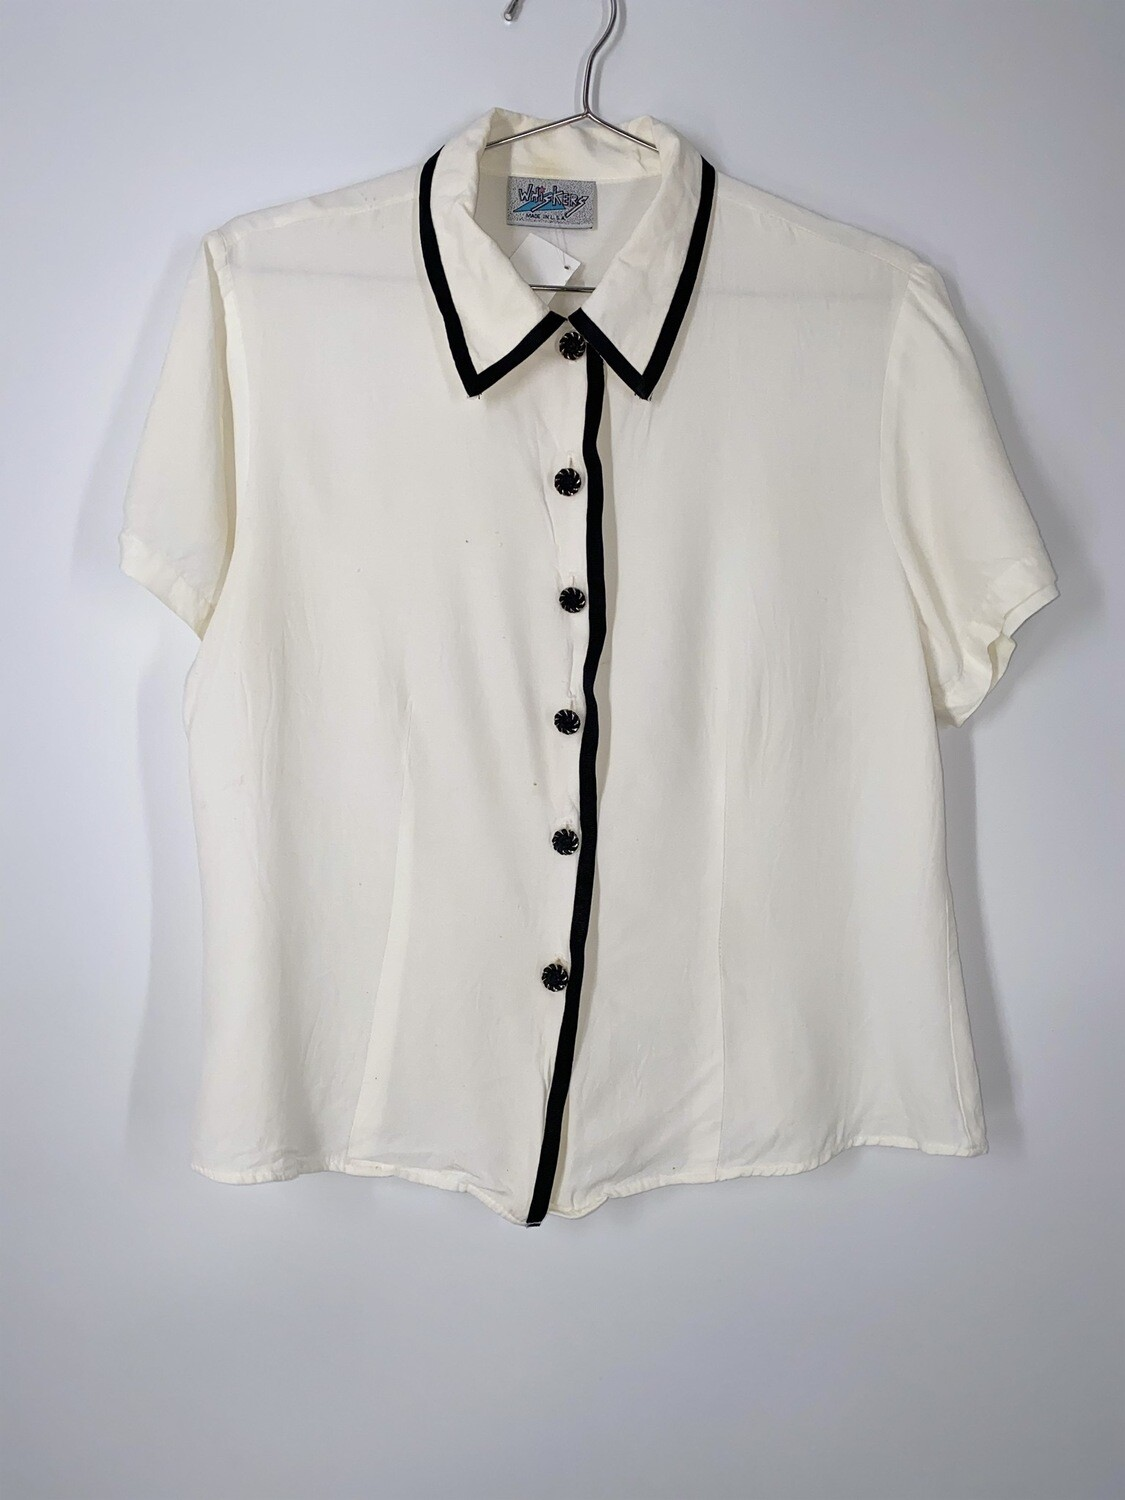 Whiskers White Jewel Button Up Top Size M